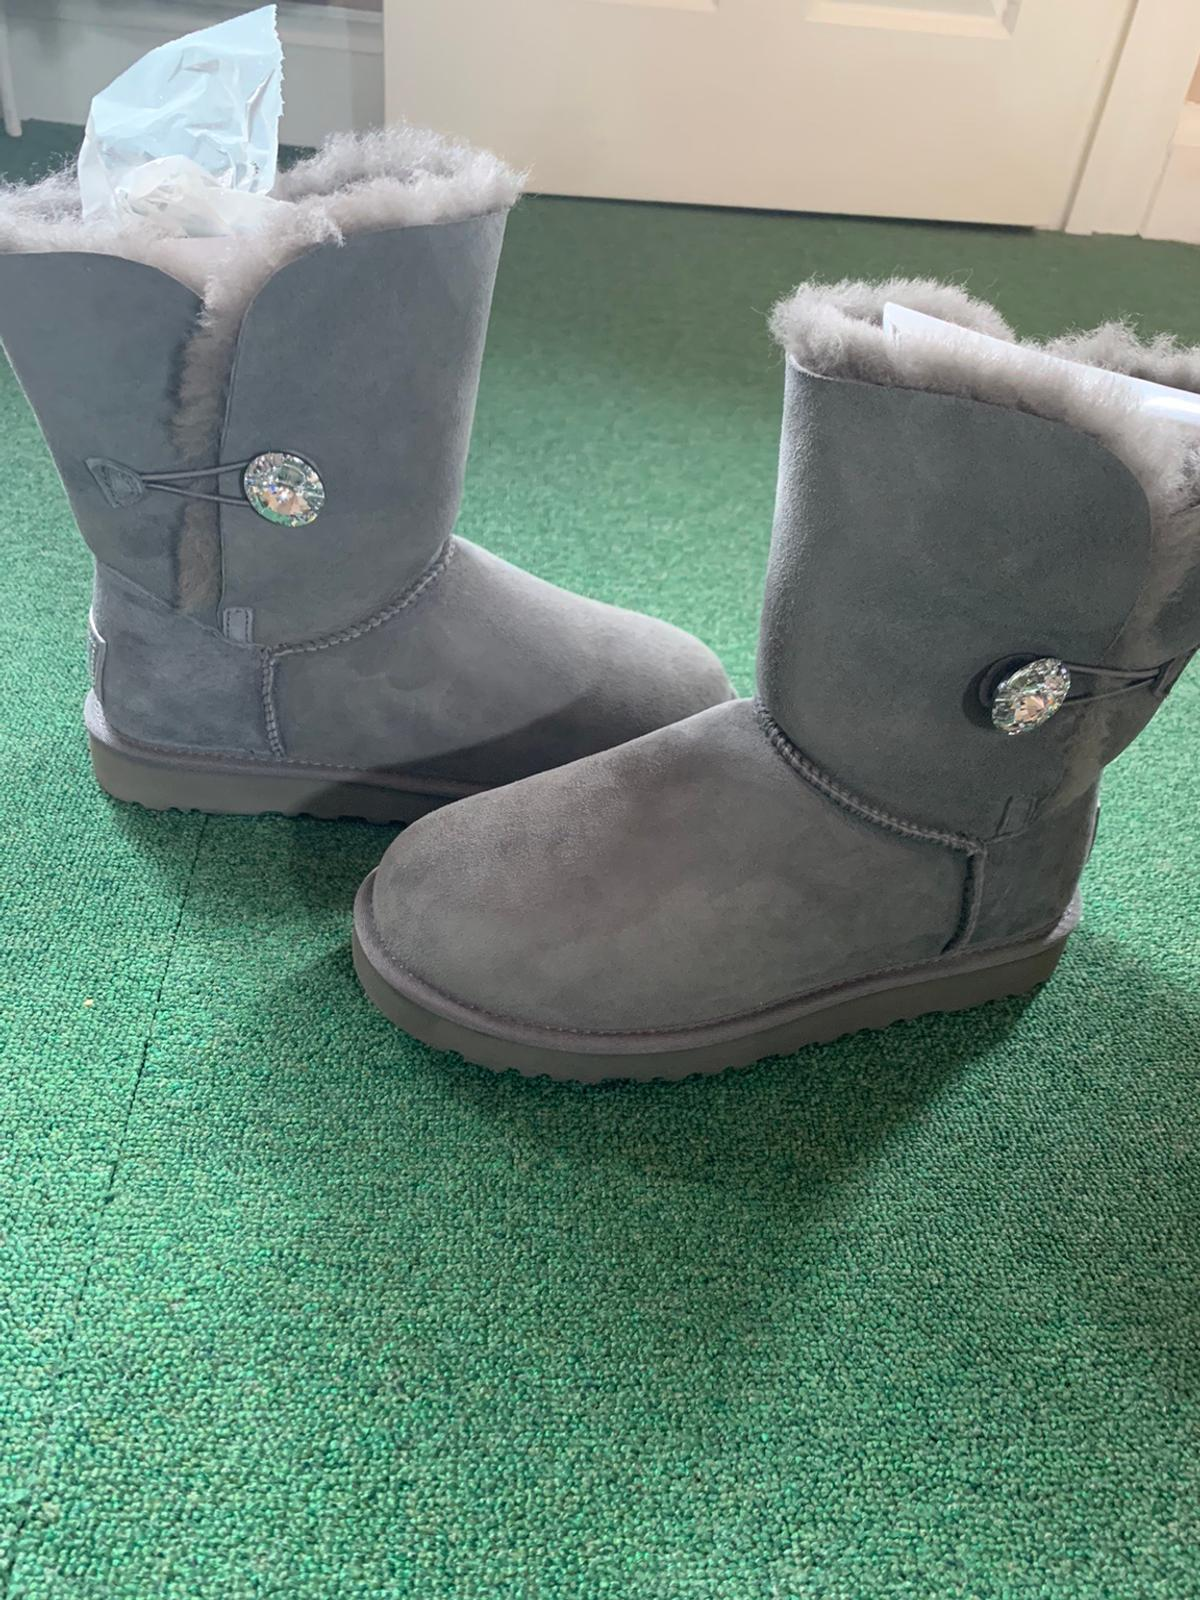 Authentic Grey suede ladies UGG boots. Bailey Bling with Swarovski Crystal label and button. With the hologram label for authenticity. Size as stated on the box: USA 8 UK 6.5 EU 39 Japan 250 Never been worn.